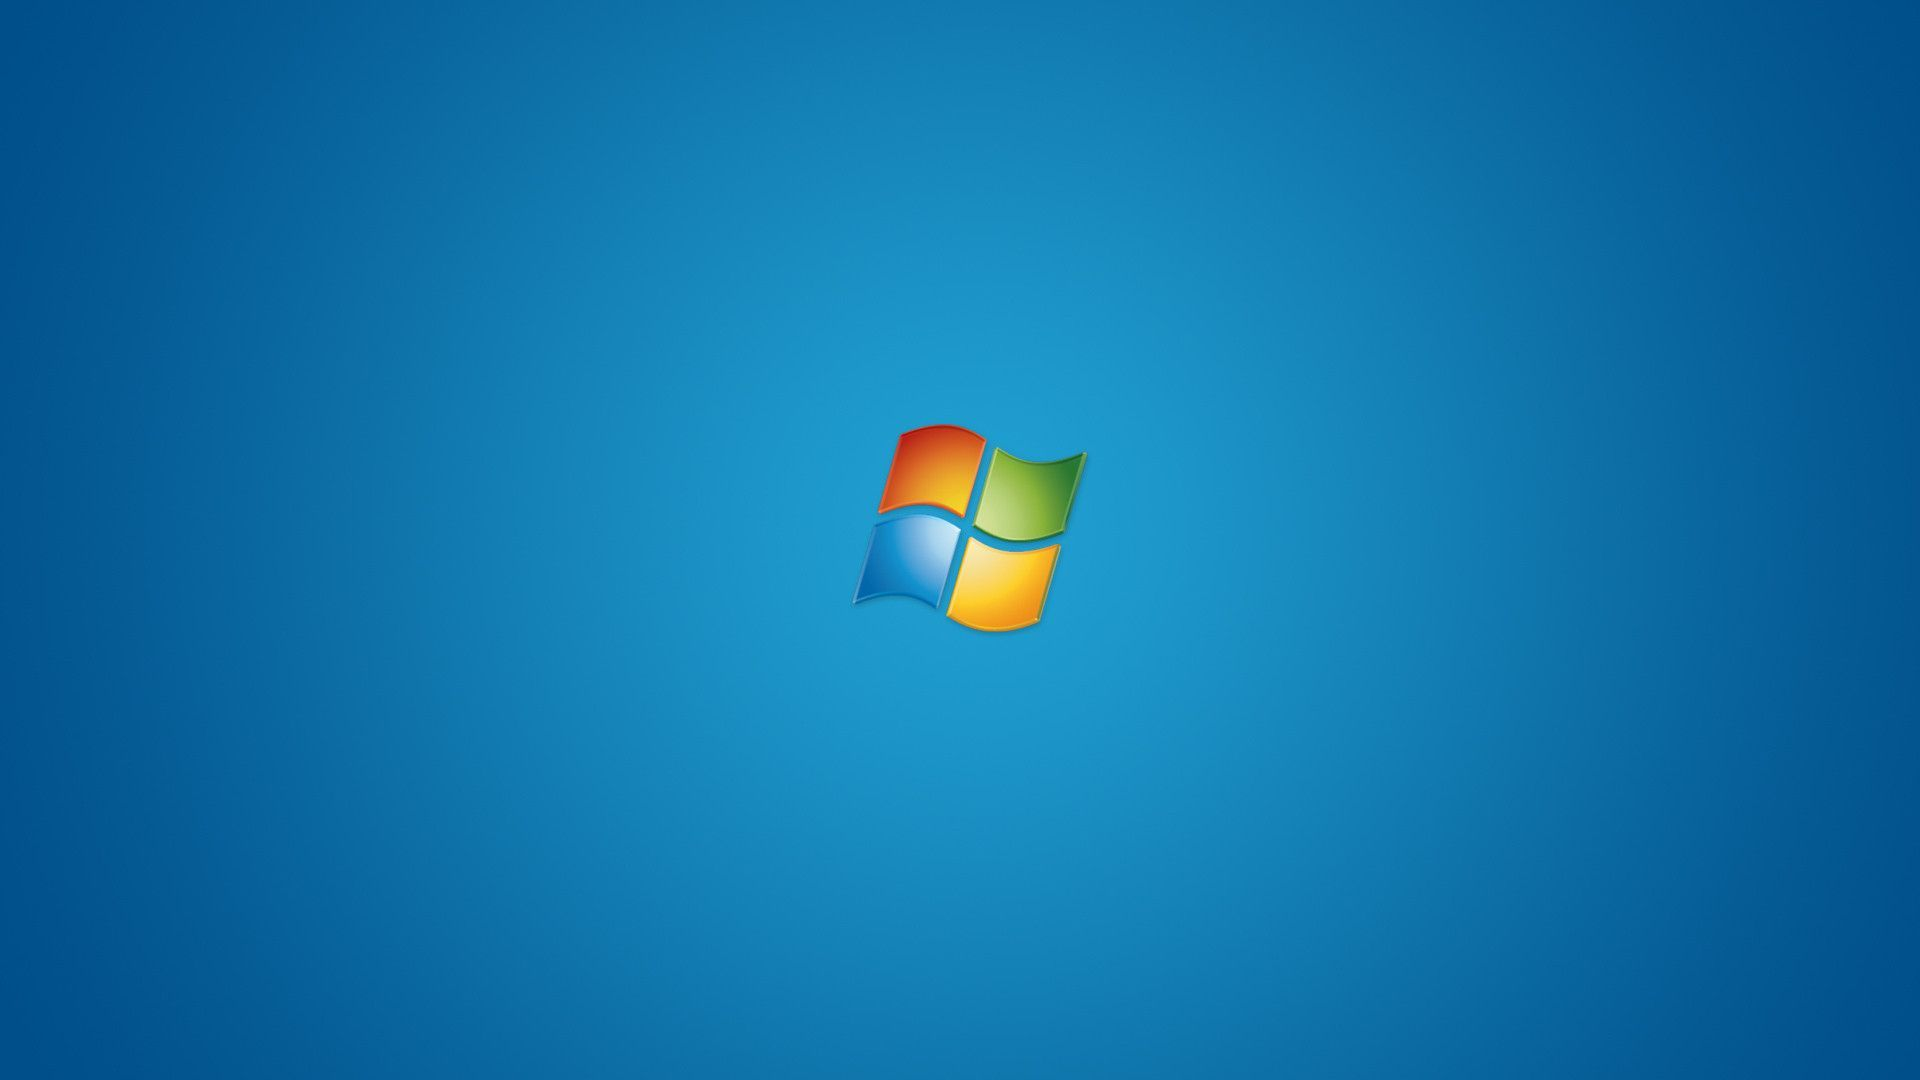 microsoft wallpapers wallpaper